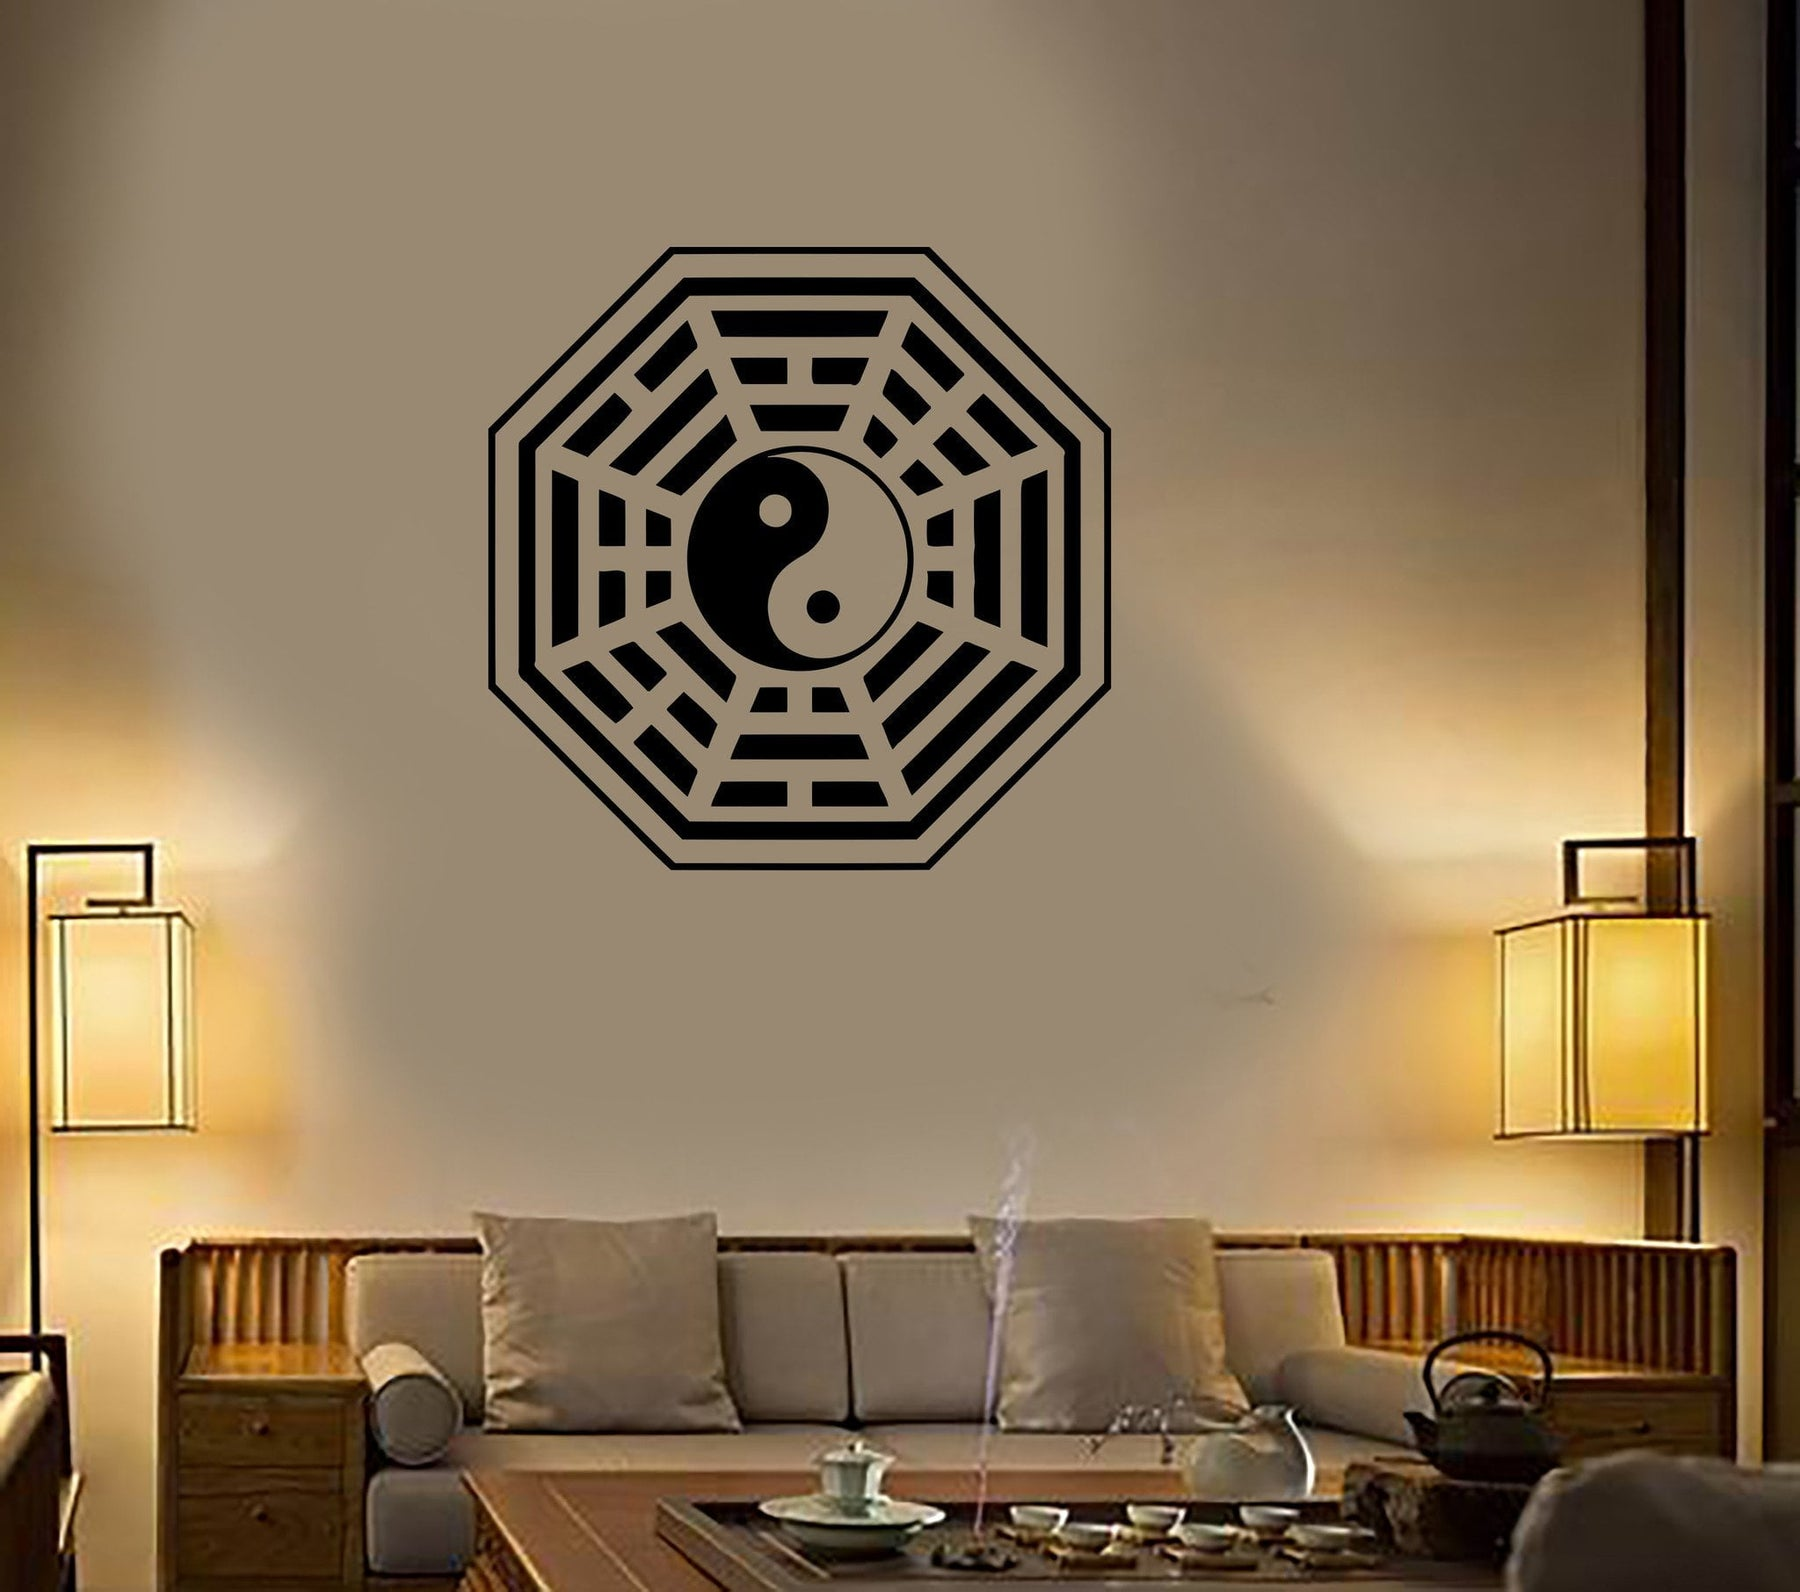 Wall Decal Buddha Yin Yang Oriental Relaxation Meditation OM Decor Unique Gift (z2654)